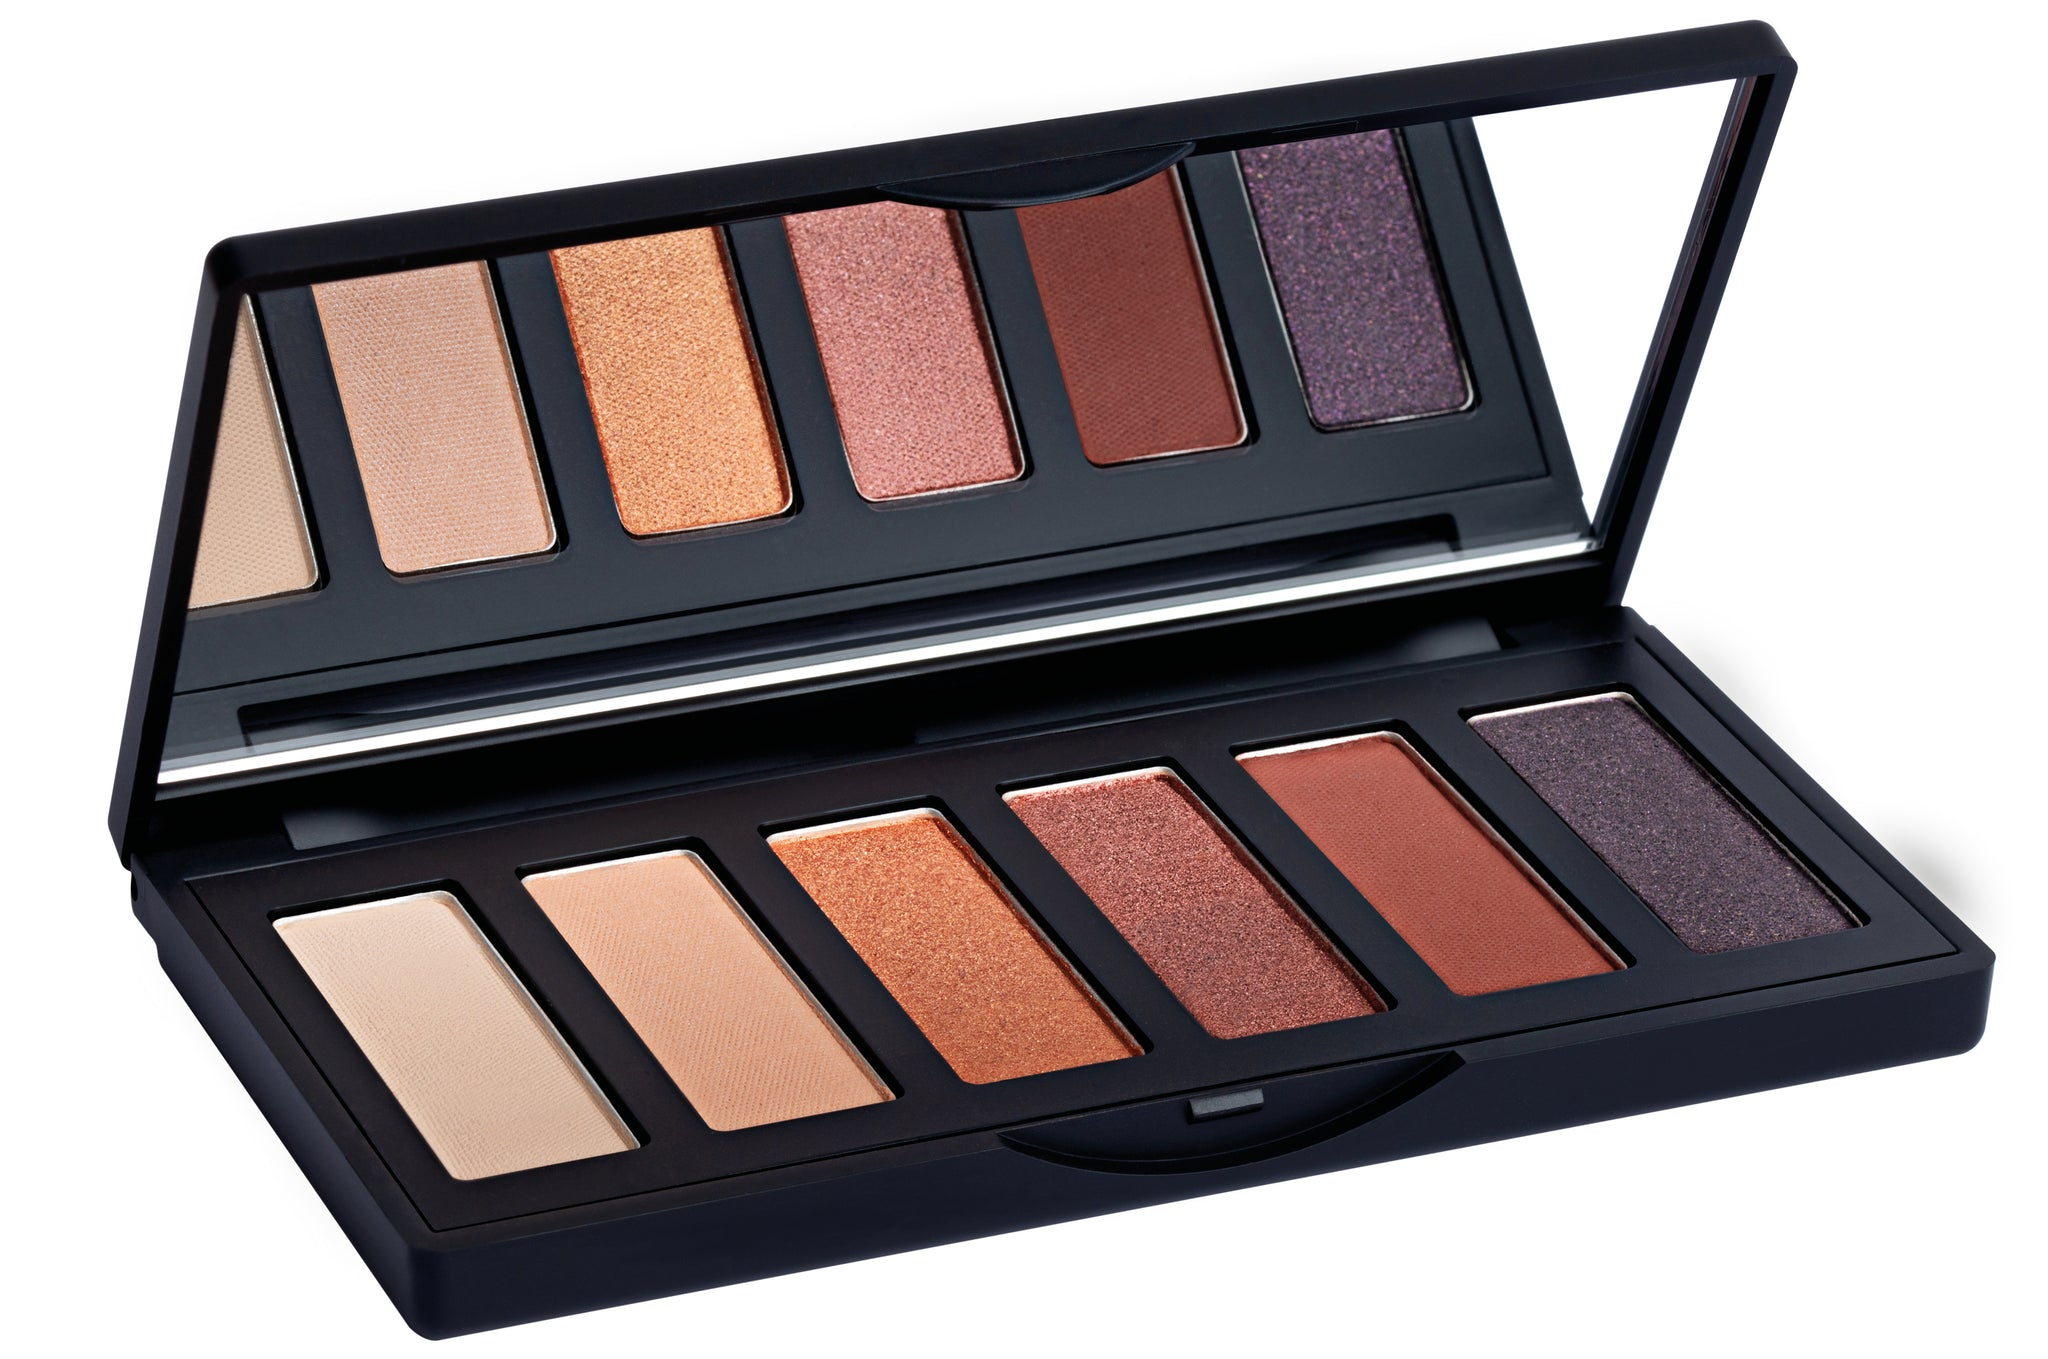 Code8's Iconoclast Eyeshadow Palette Burnt Sienna – Perfect for People With Green Eyes